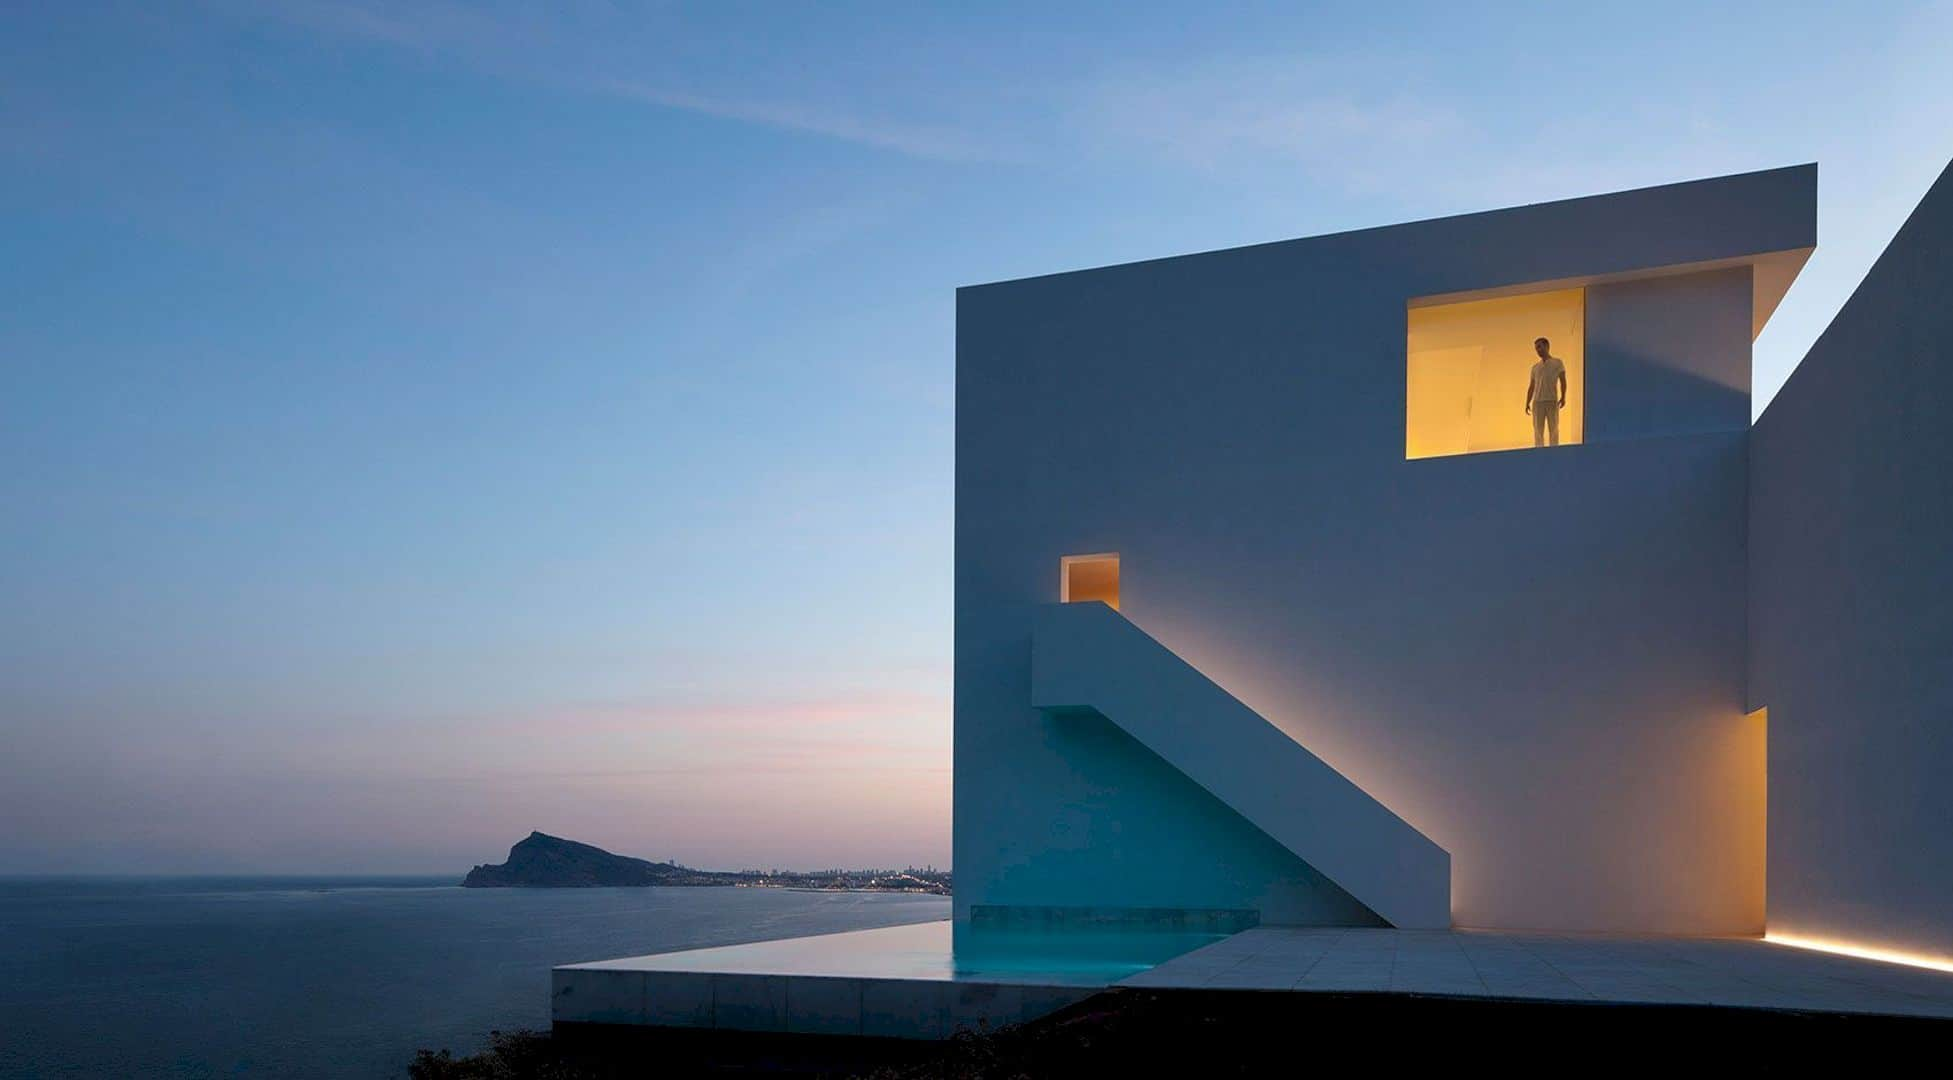 HOUSE ON THE CLIFF 1